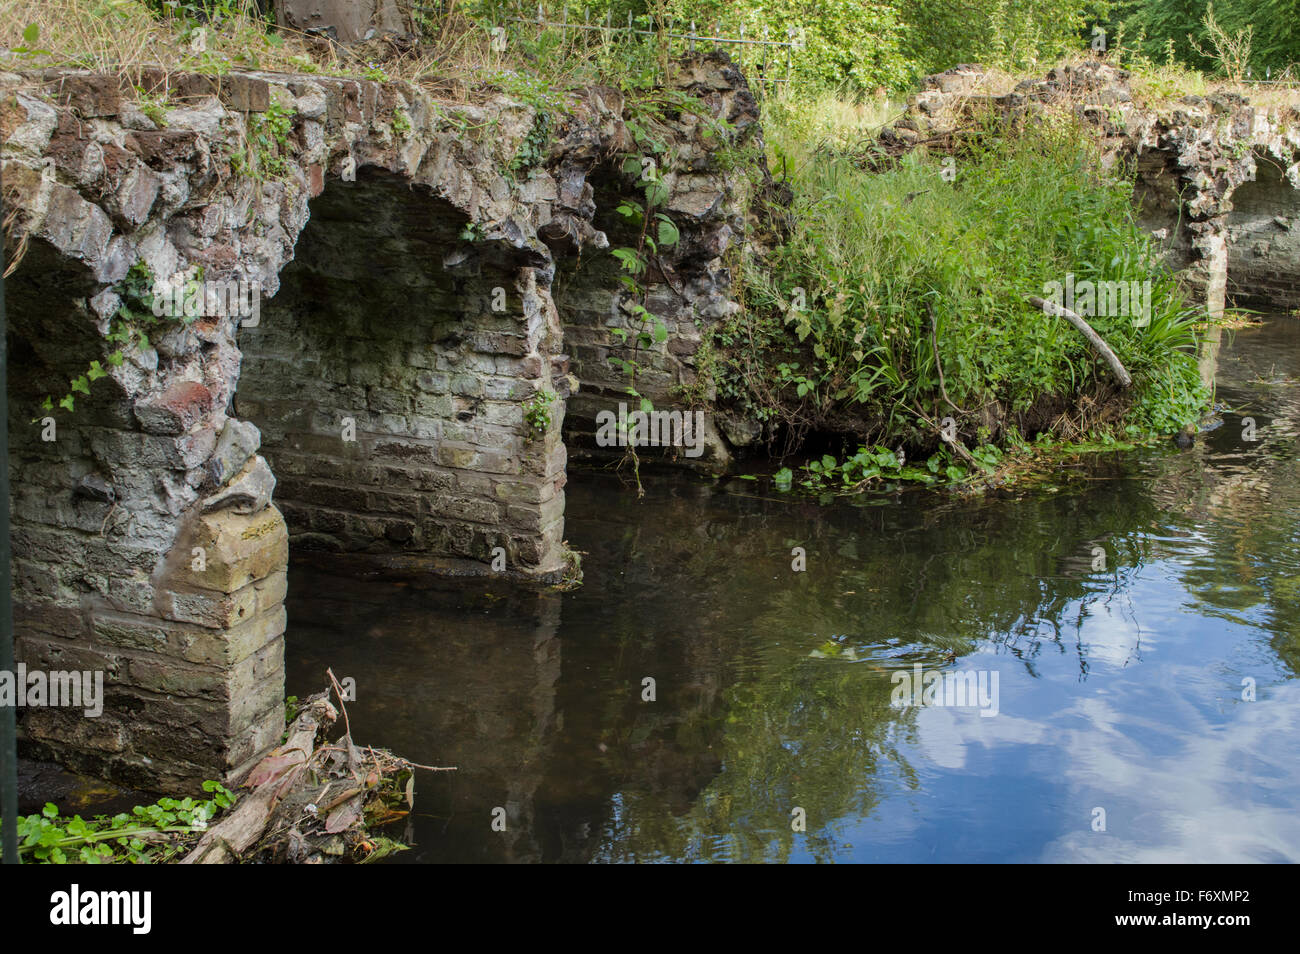 A side angle of an old stone bridge sitting in a river surrounded by greenery - Stock Image